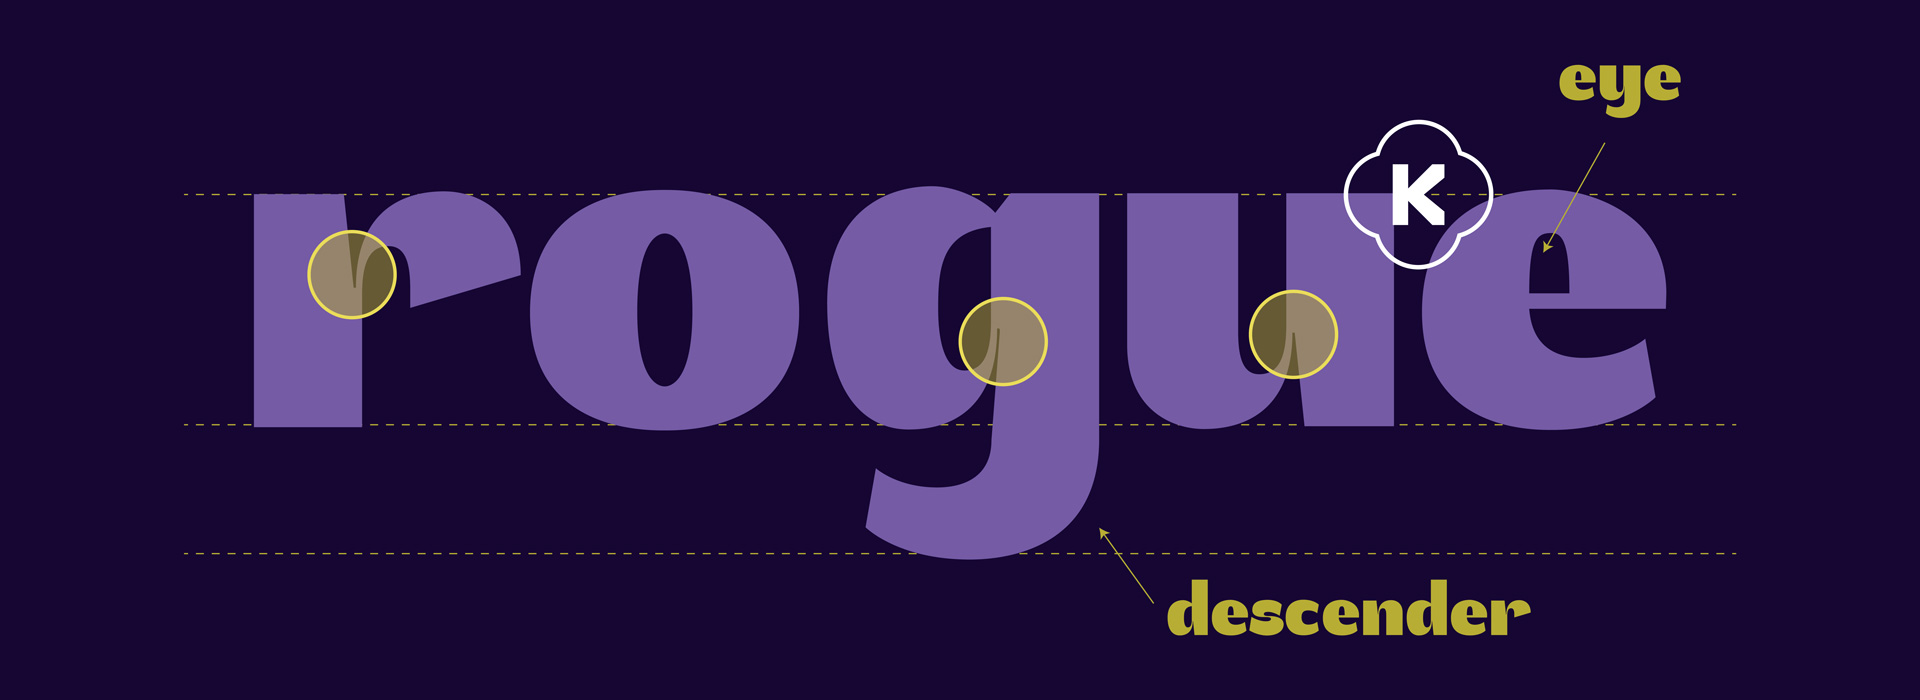 """Rogue"" with Akuto Display, highlighting characteristics of the font"